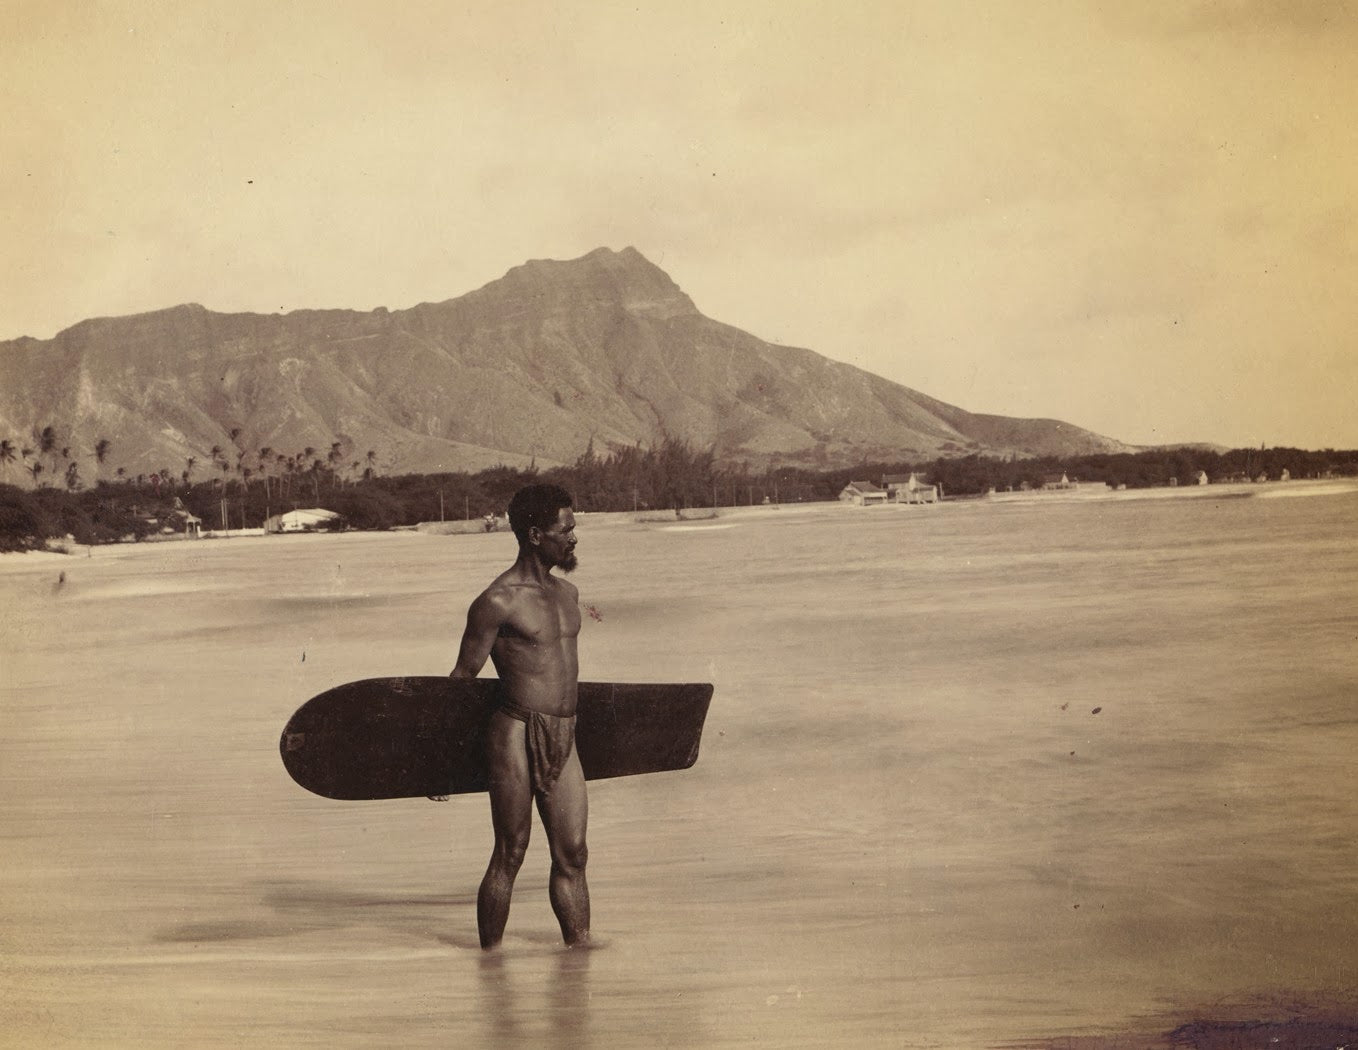 Photo Credits©: Hawaii Bishop Museum